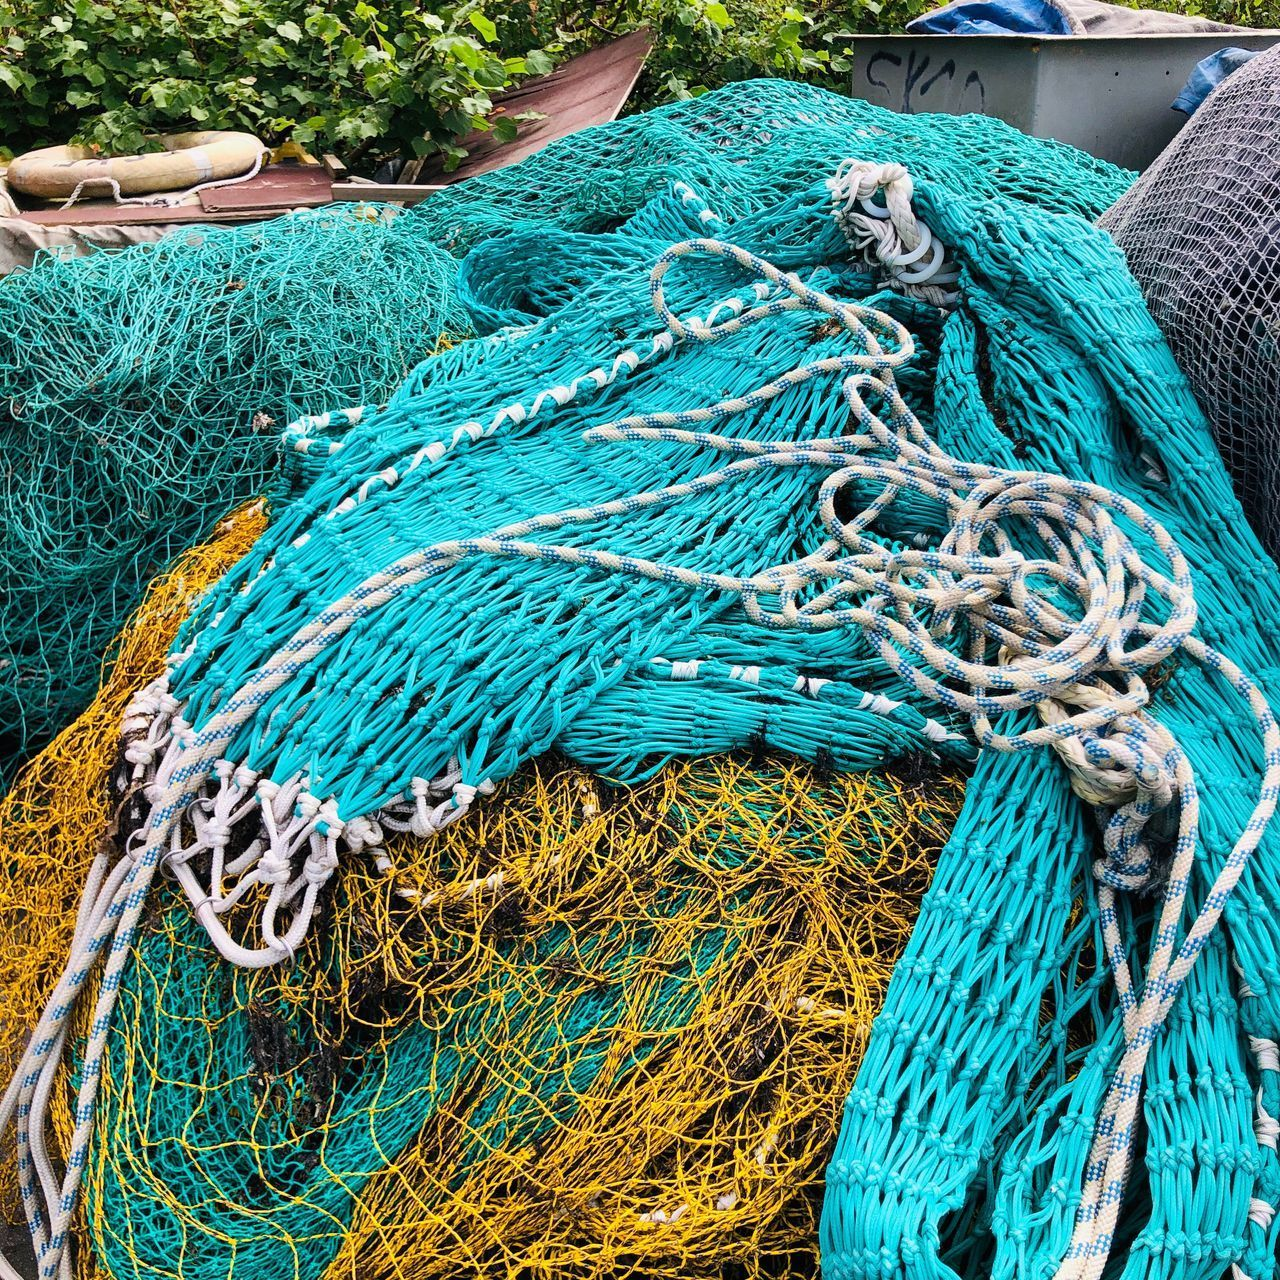 fishing net, commercial fishing net, rope, fishing, day, fishing industry, strength, no people, close-up, complexity, blue, fishing rod, green color, outdoors, high angle view, rod, transportation, netting, pattern, tangled, turquoise colored, fishing boat